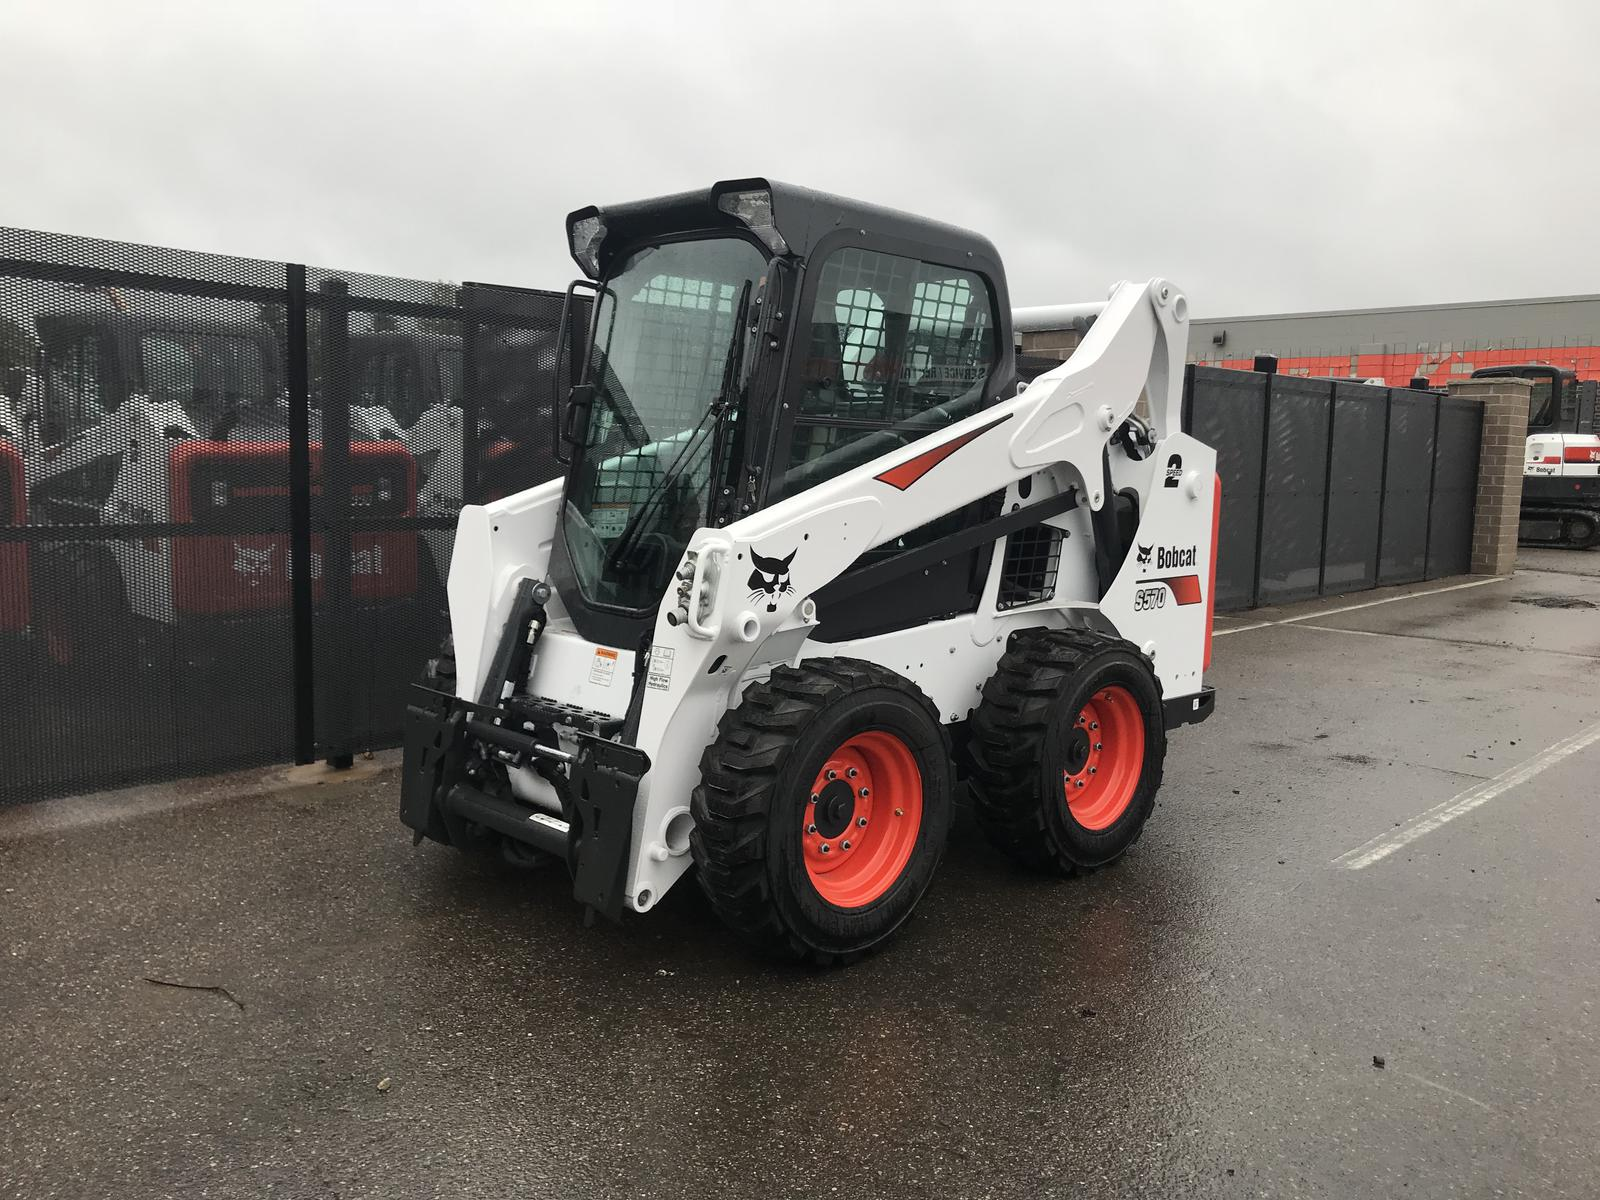 2018 bobcat s570 for sale in burnsville mn tri state bobcat rh  tristatebobcat com Bobcat Parts Online Bobcat Parts Diagrams